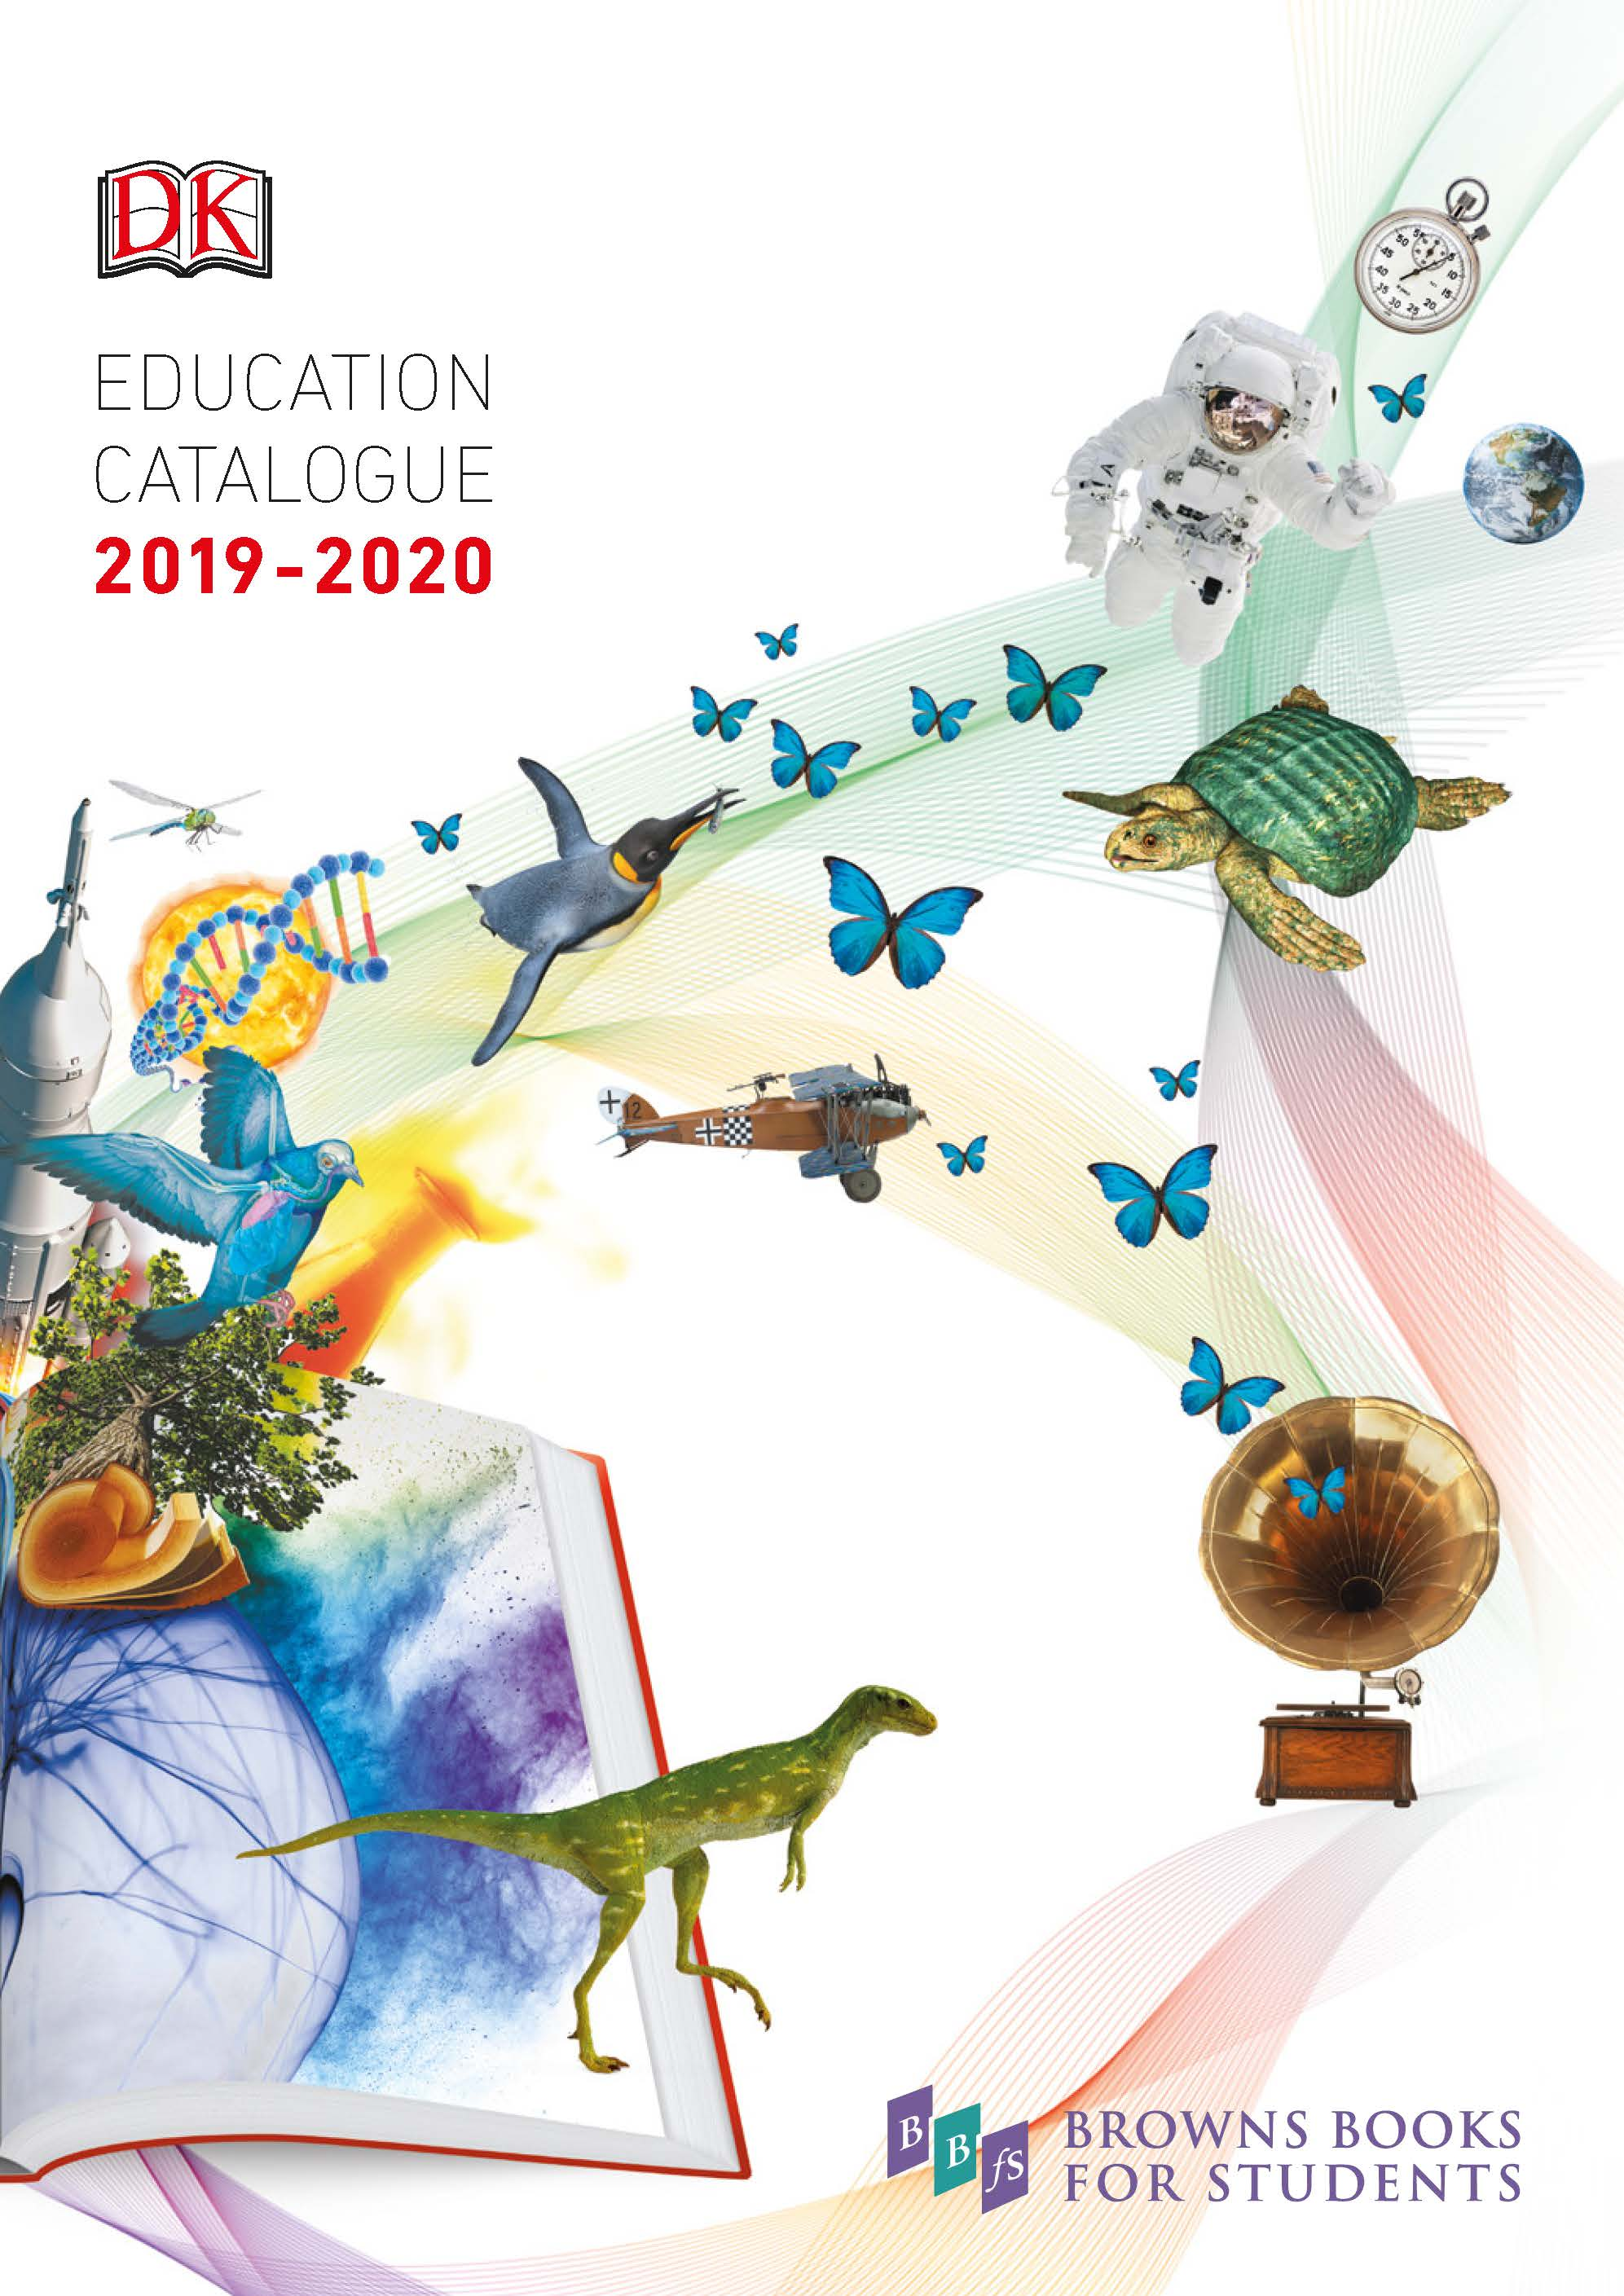 DK Education Catalogue